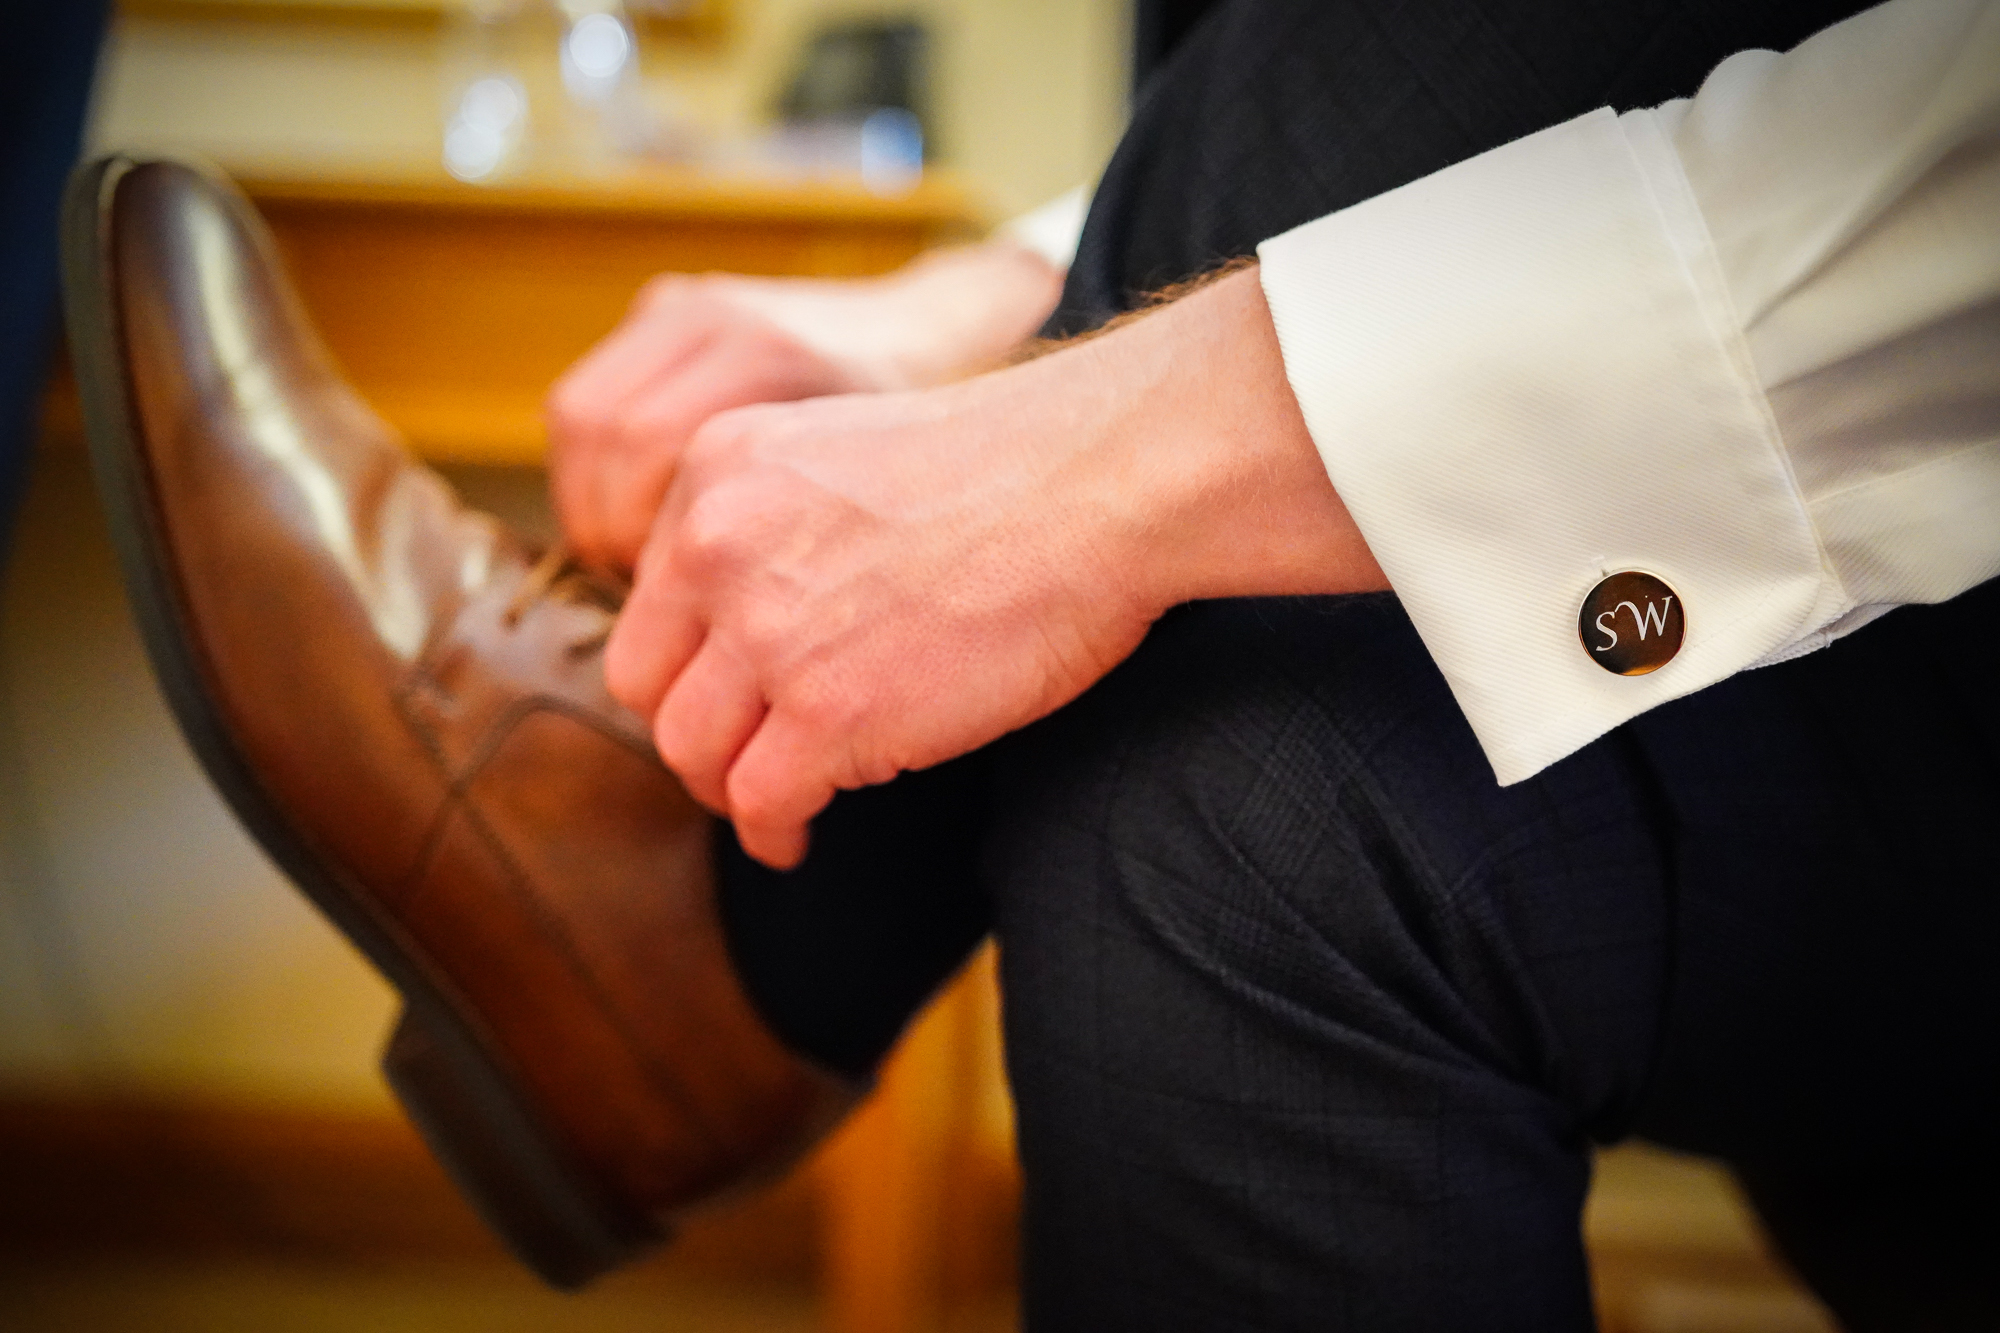 Personalised cufflinks, captured naturally during groom prep.